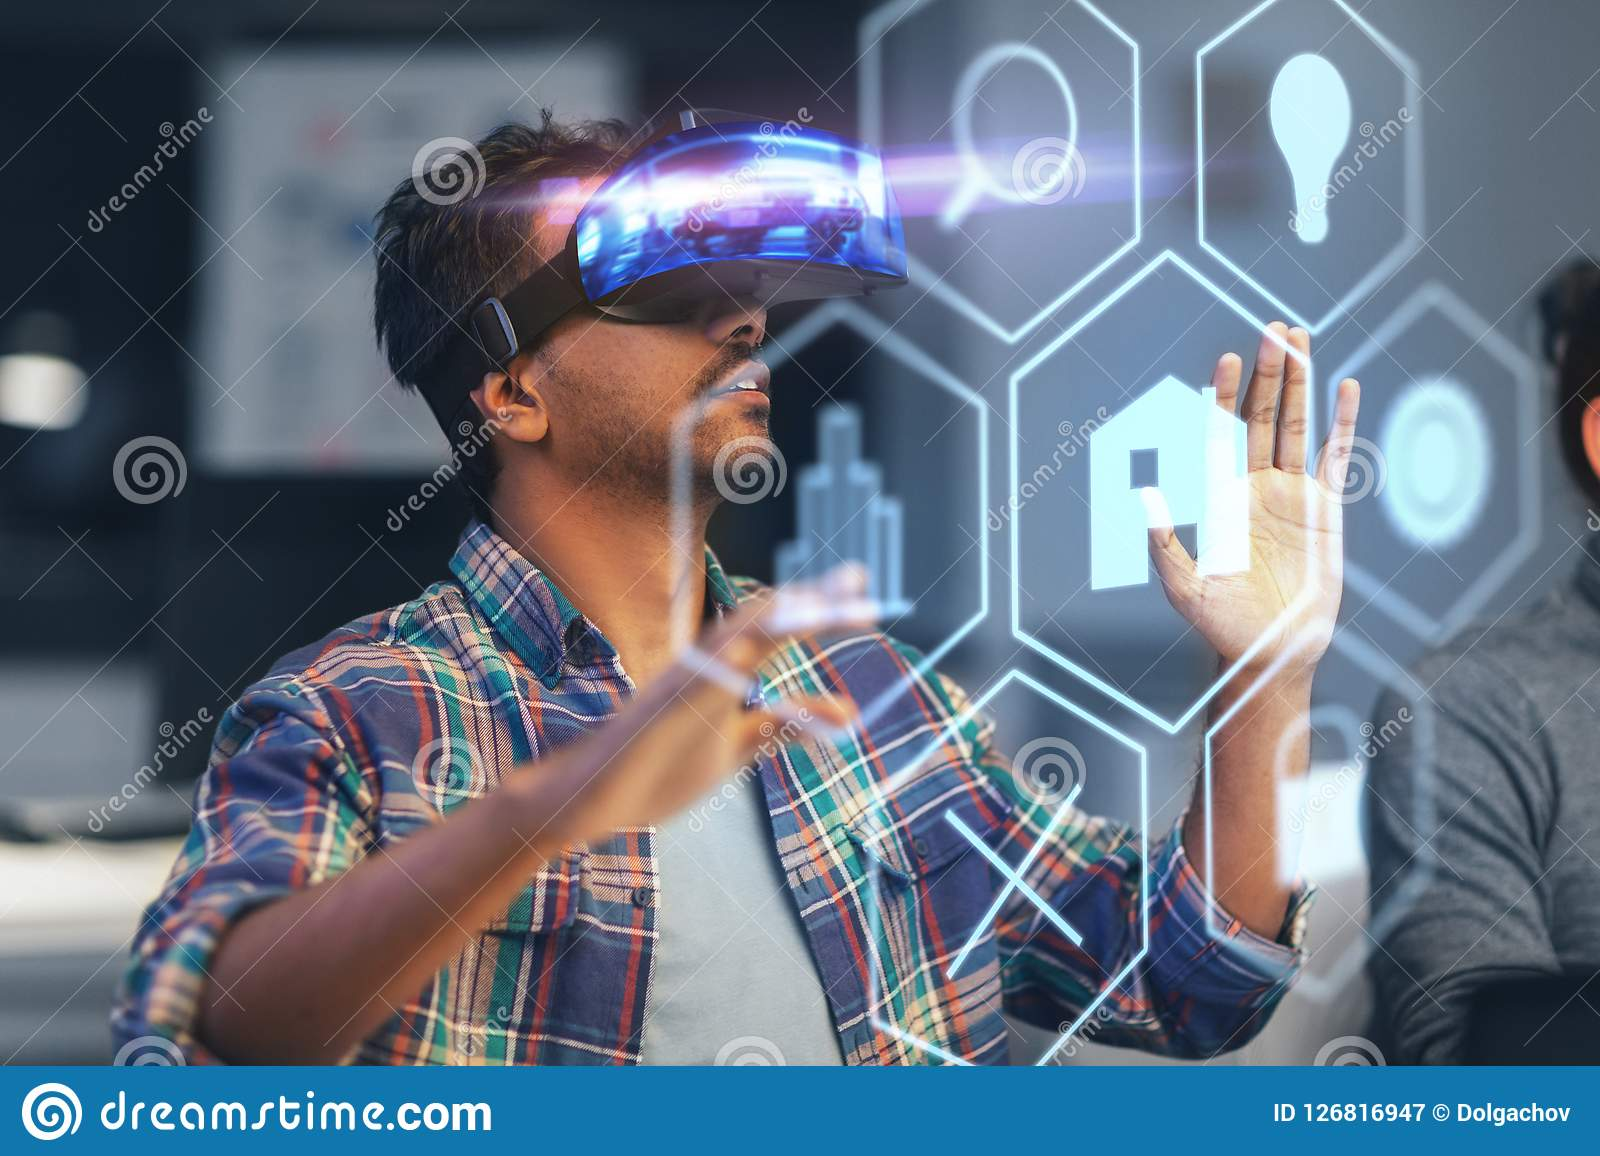 Man in vr headset with virtual interface at office. Deadline, augmented reality and technology concept - creative man with virtual headset or vr glasses and Royalty Free Stock Photography